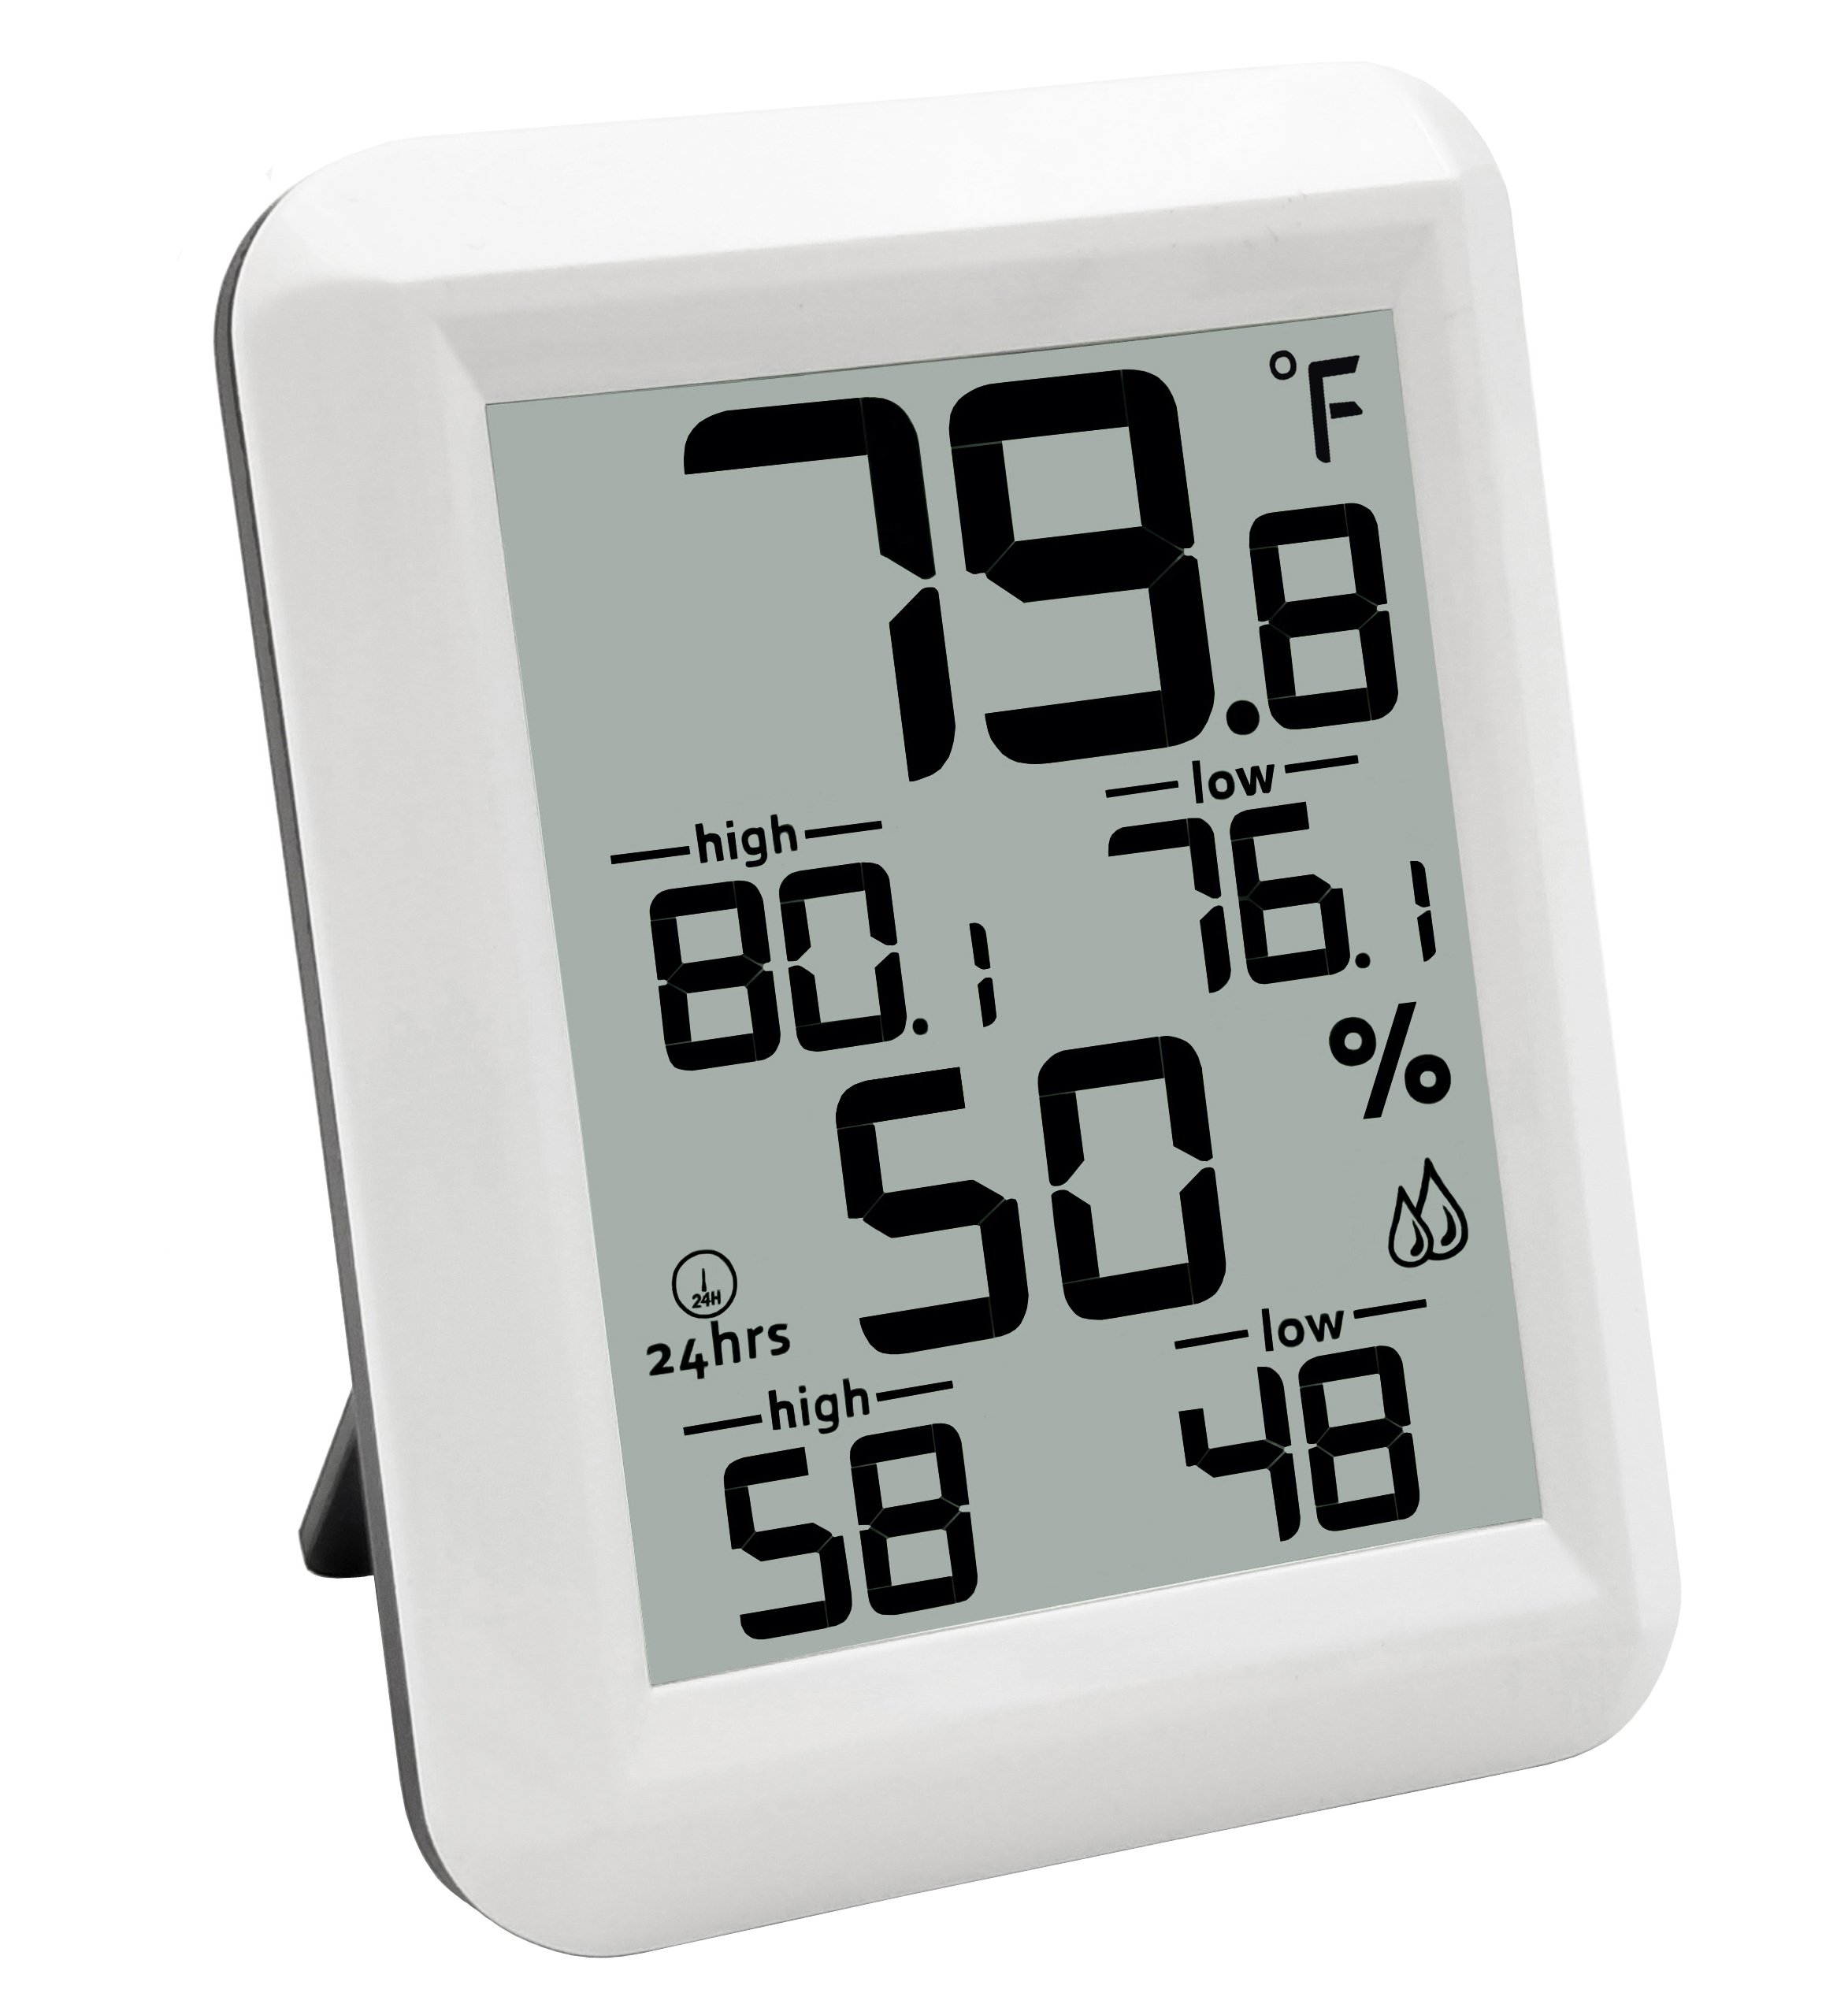 Amastar A0421 Indoor Hygrometer Thermometer Portable Digital Temperature Monitor Humidity Gauge